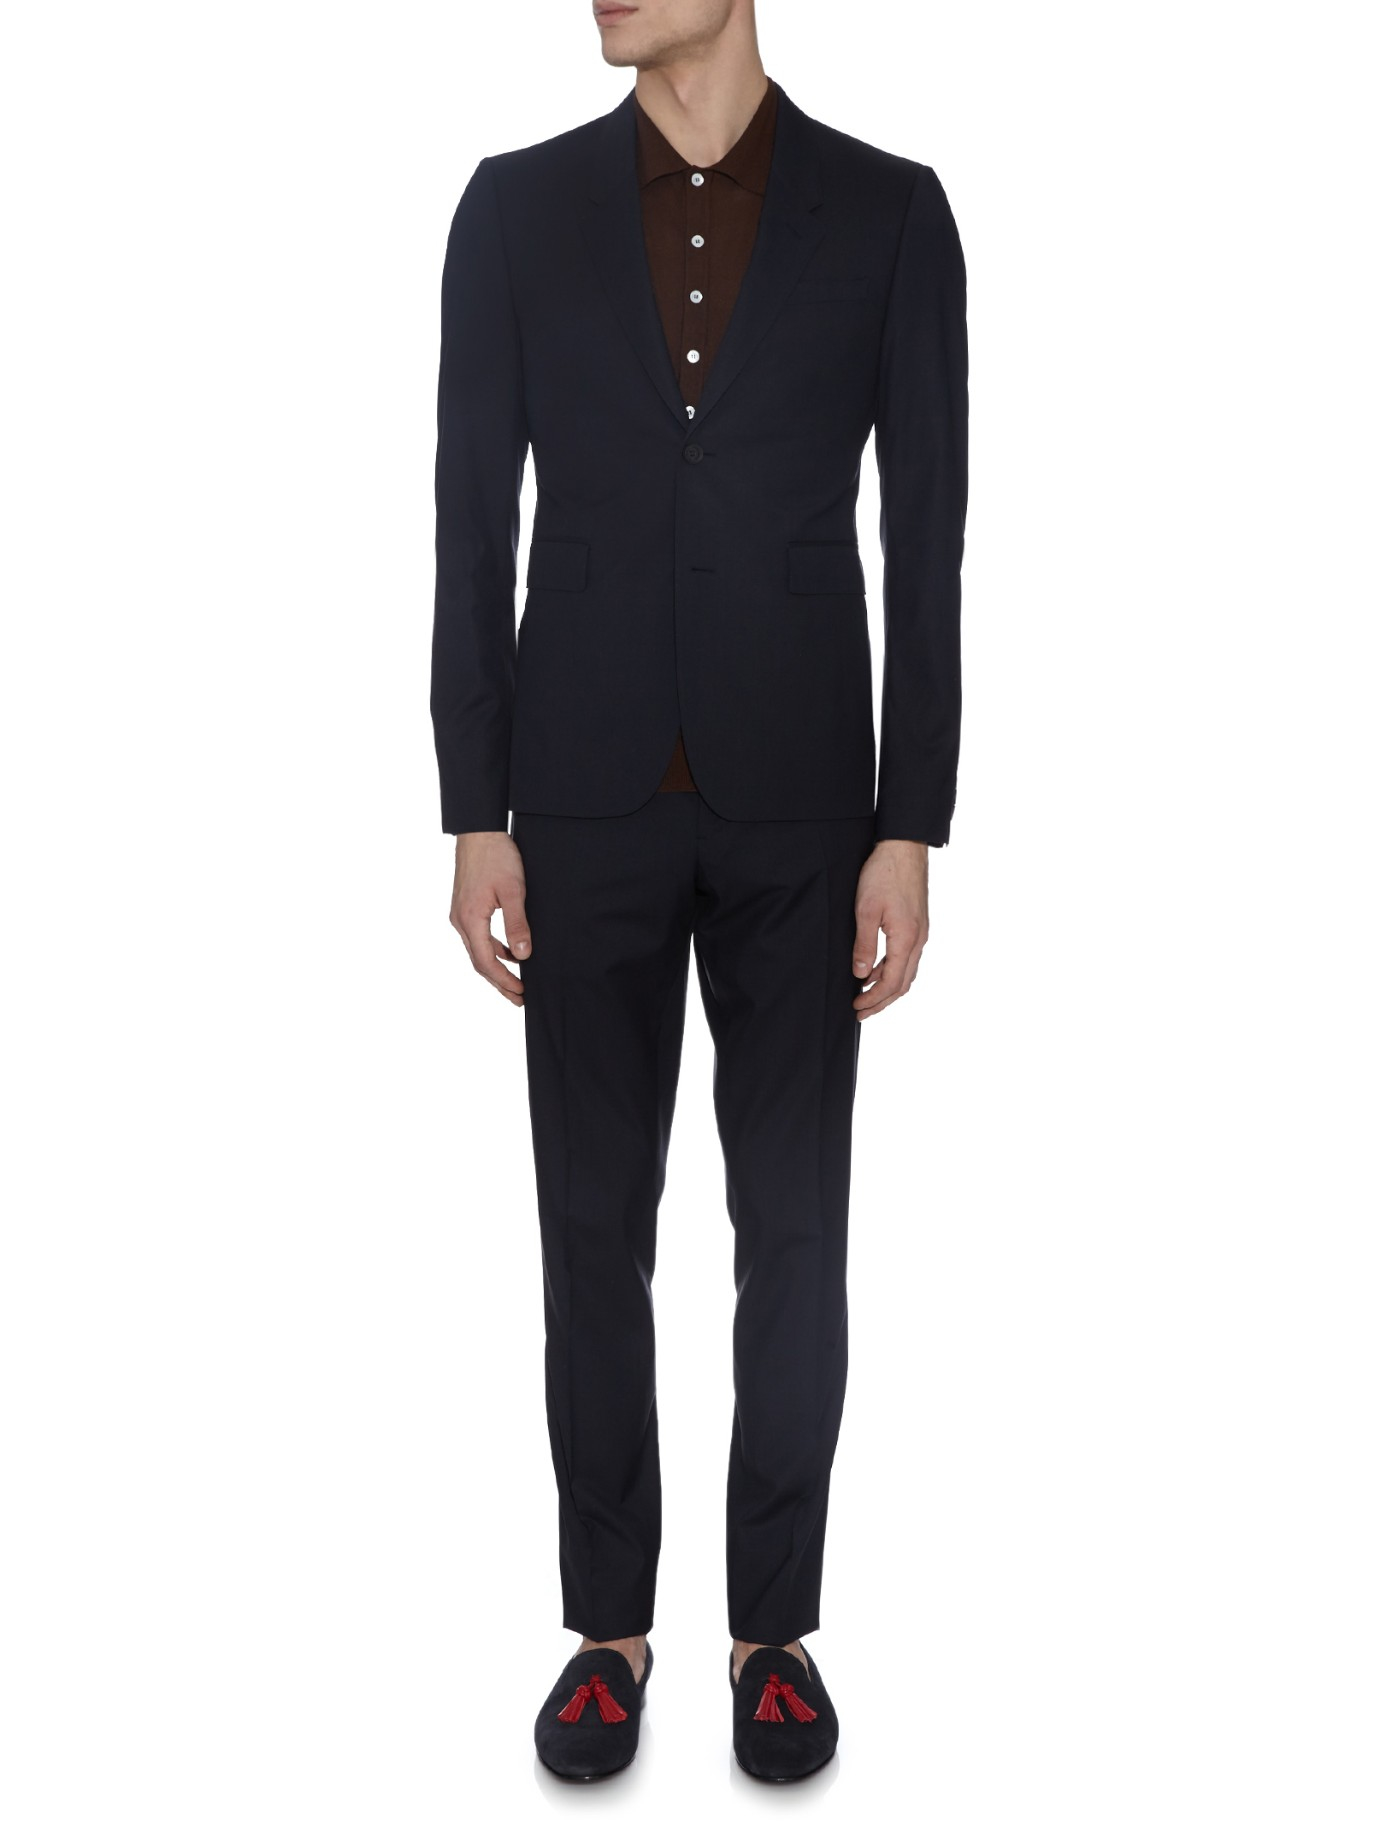 Burberry Prorsum Straight-leg Wool And Silk-blend Trousers in Navy (Black) for Men